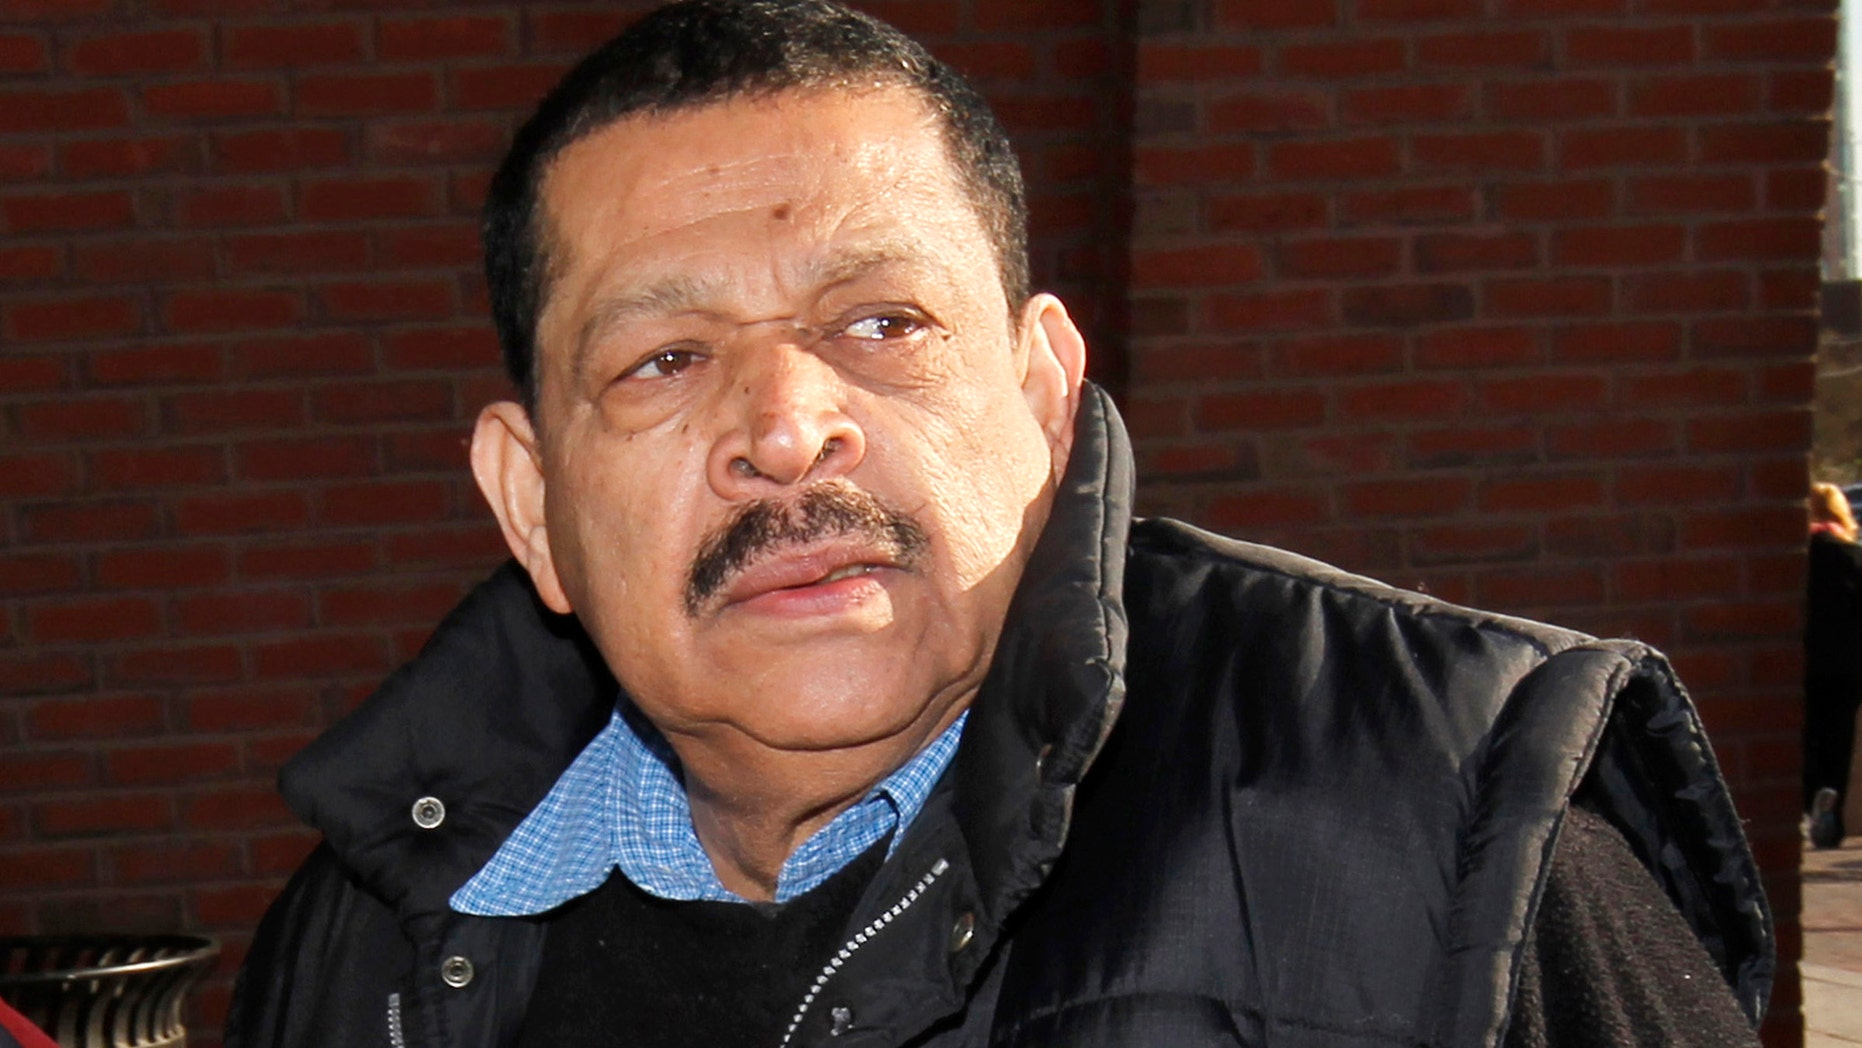 Inocente Orlando  Montano, a former Salvadoran military officer, arrives at federal court in Boston in Dec. 19, 2011 .